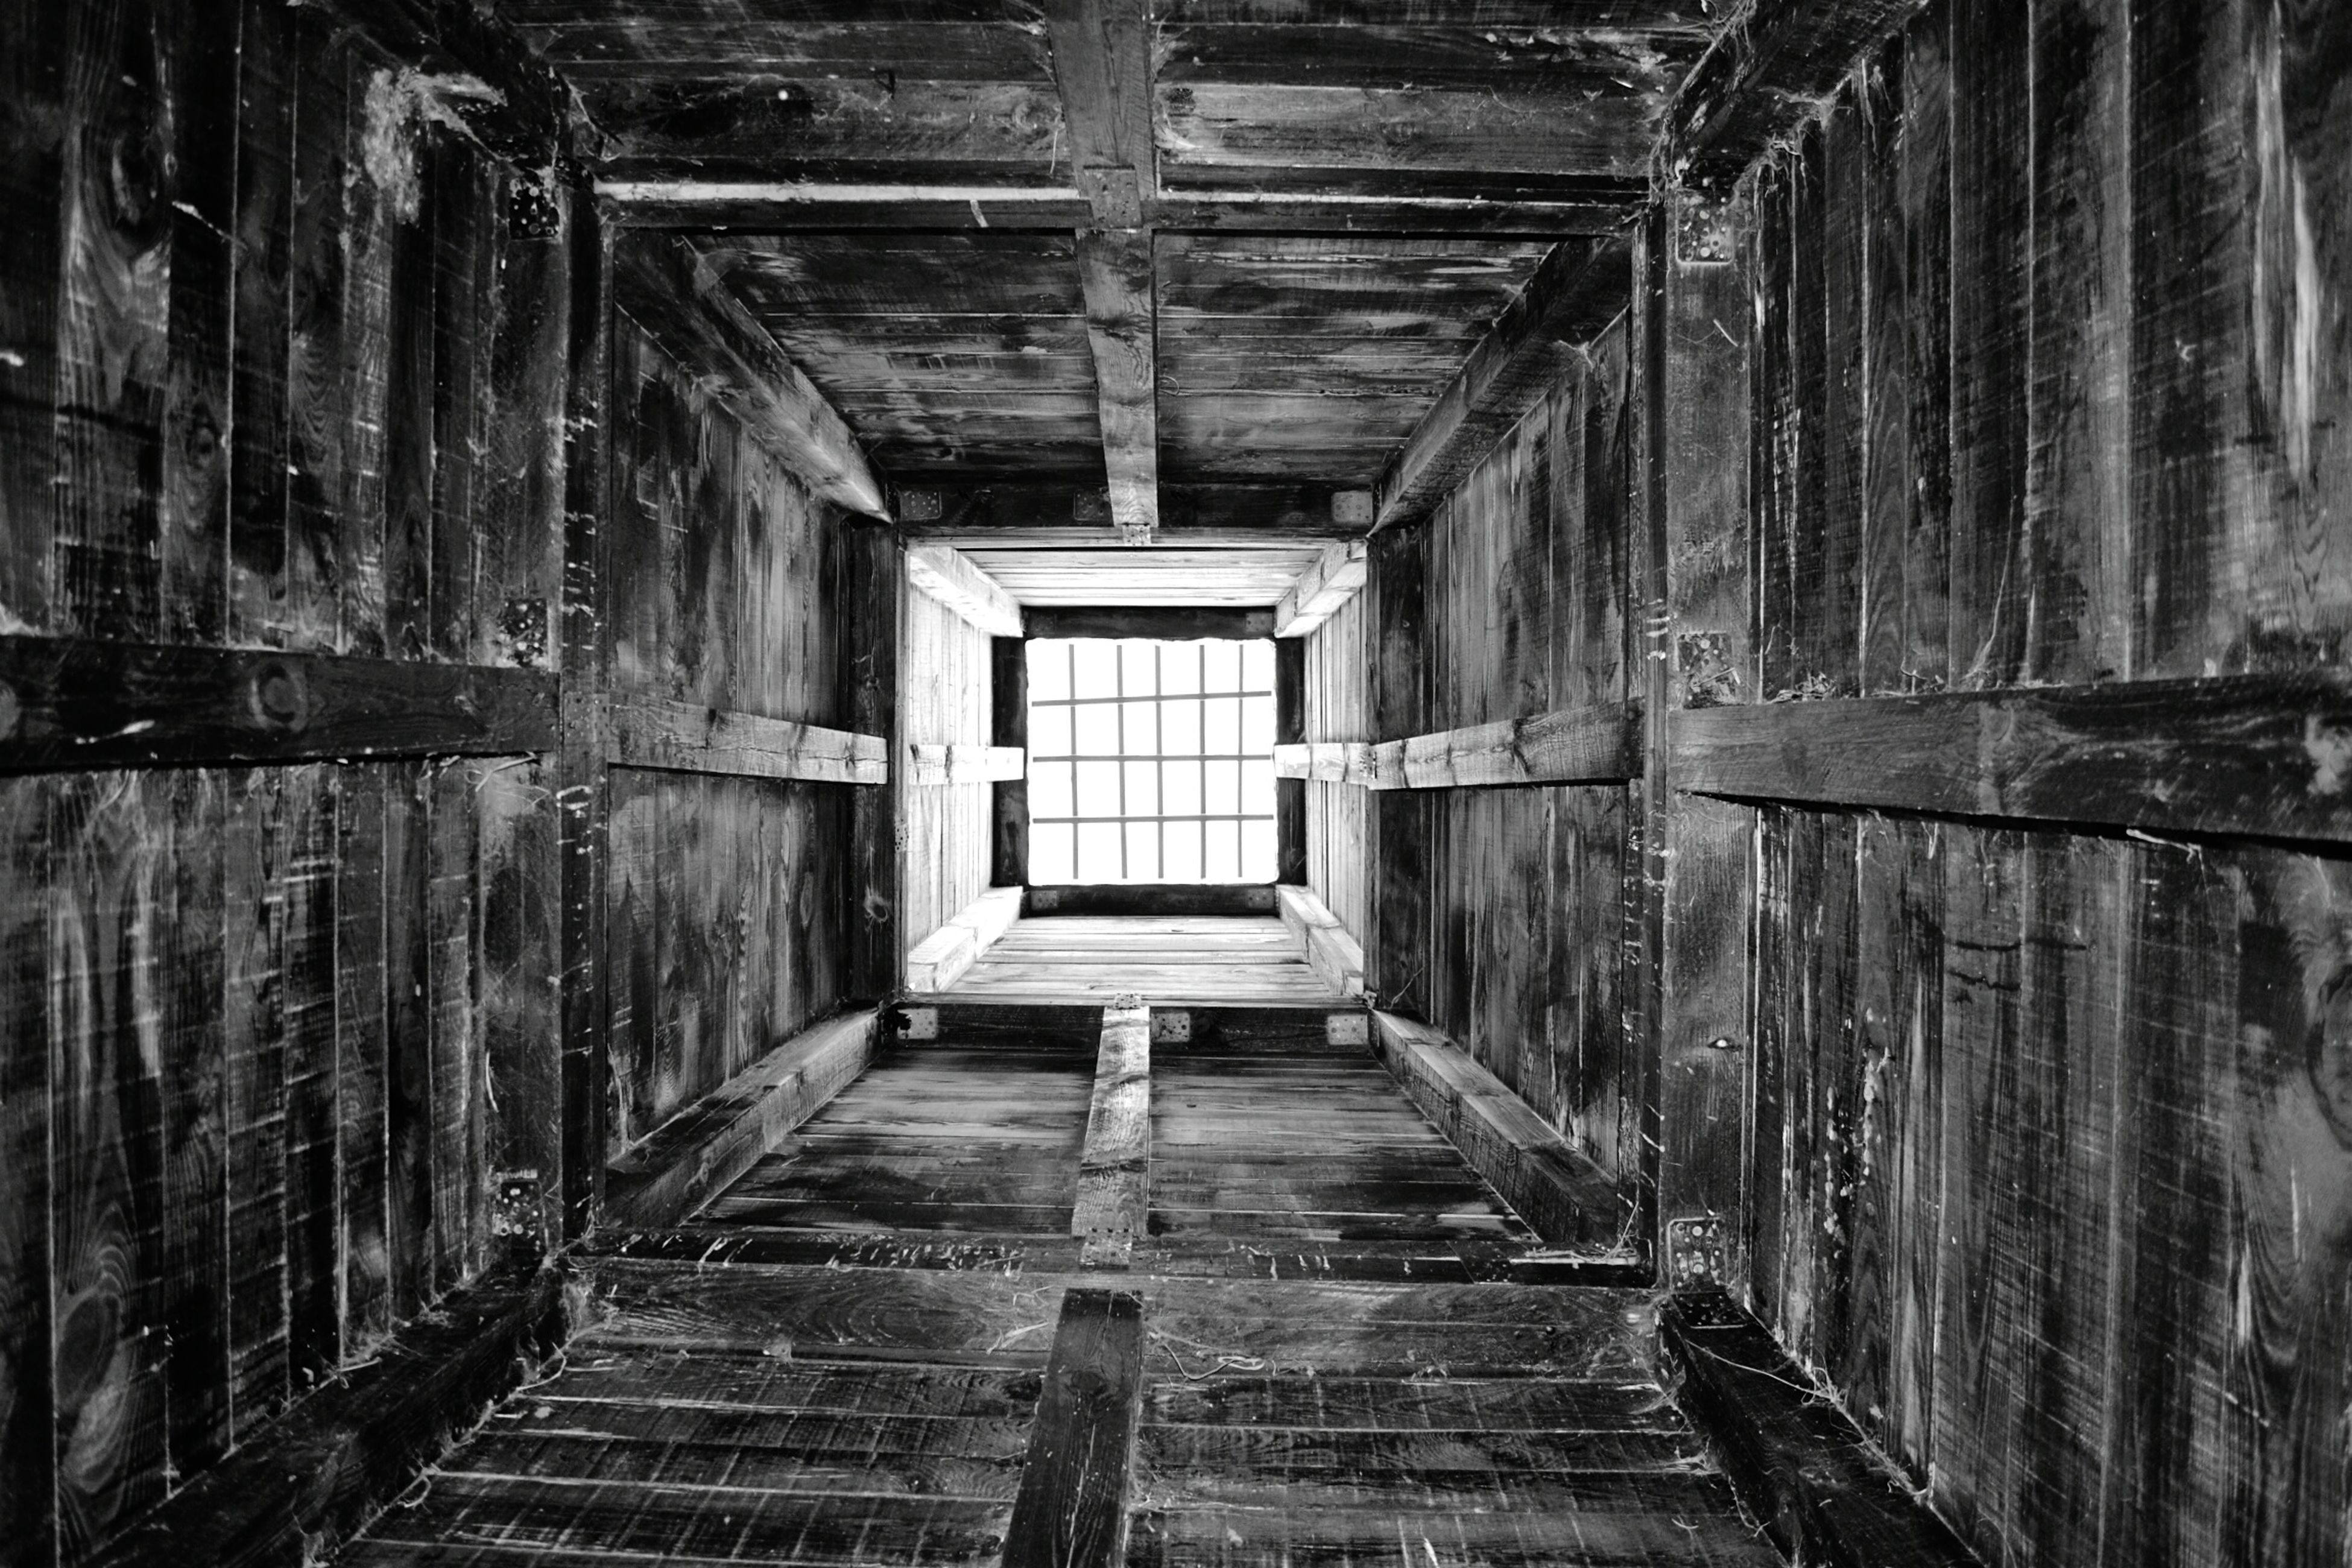 architecture, the way forward, built structure, indoors, abandoned, old, diminishing perspective, narrow, damaged, obsolete, deterioration, corridor, run-down, weathered, empty, wood - material, ceiling, wall - building feature, absence, building